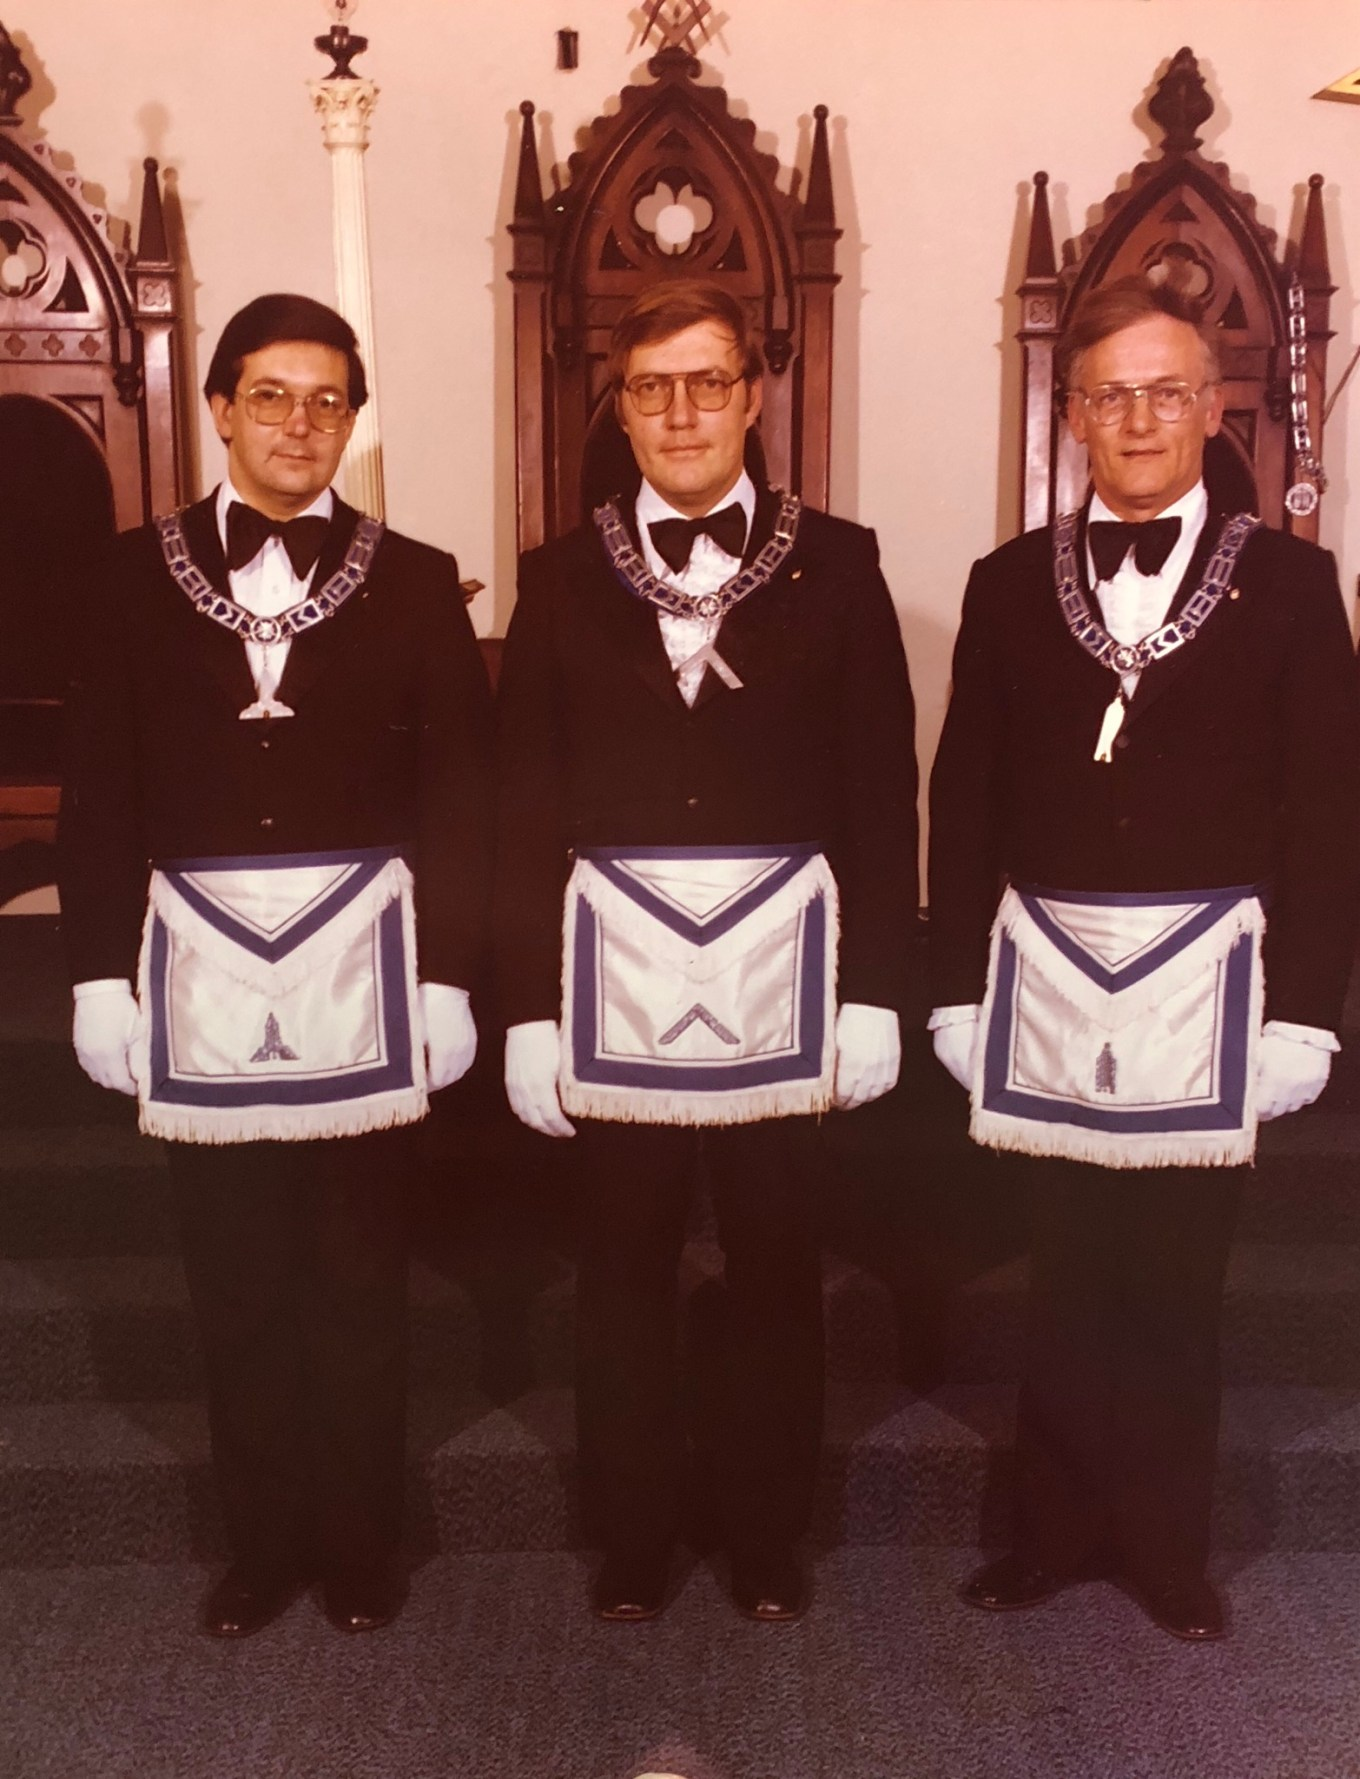 Simonds Lodge officers, Burlington MA